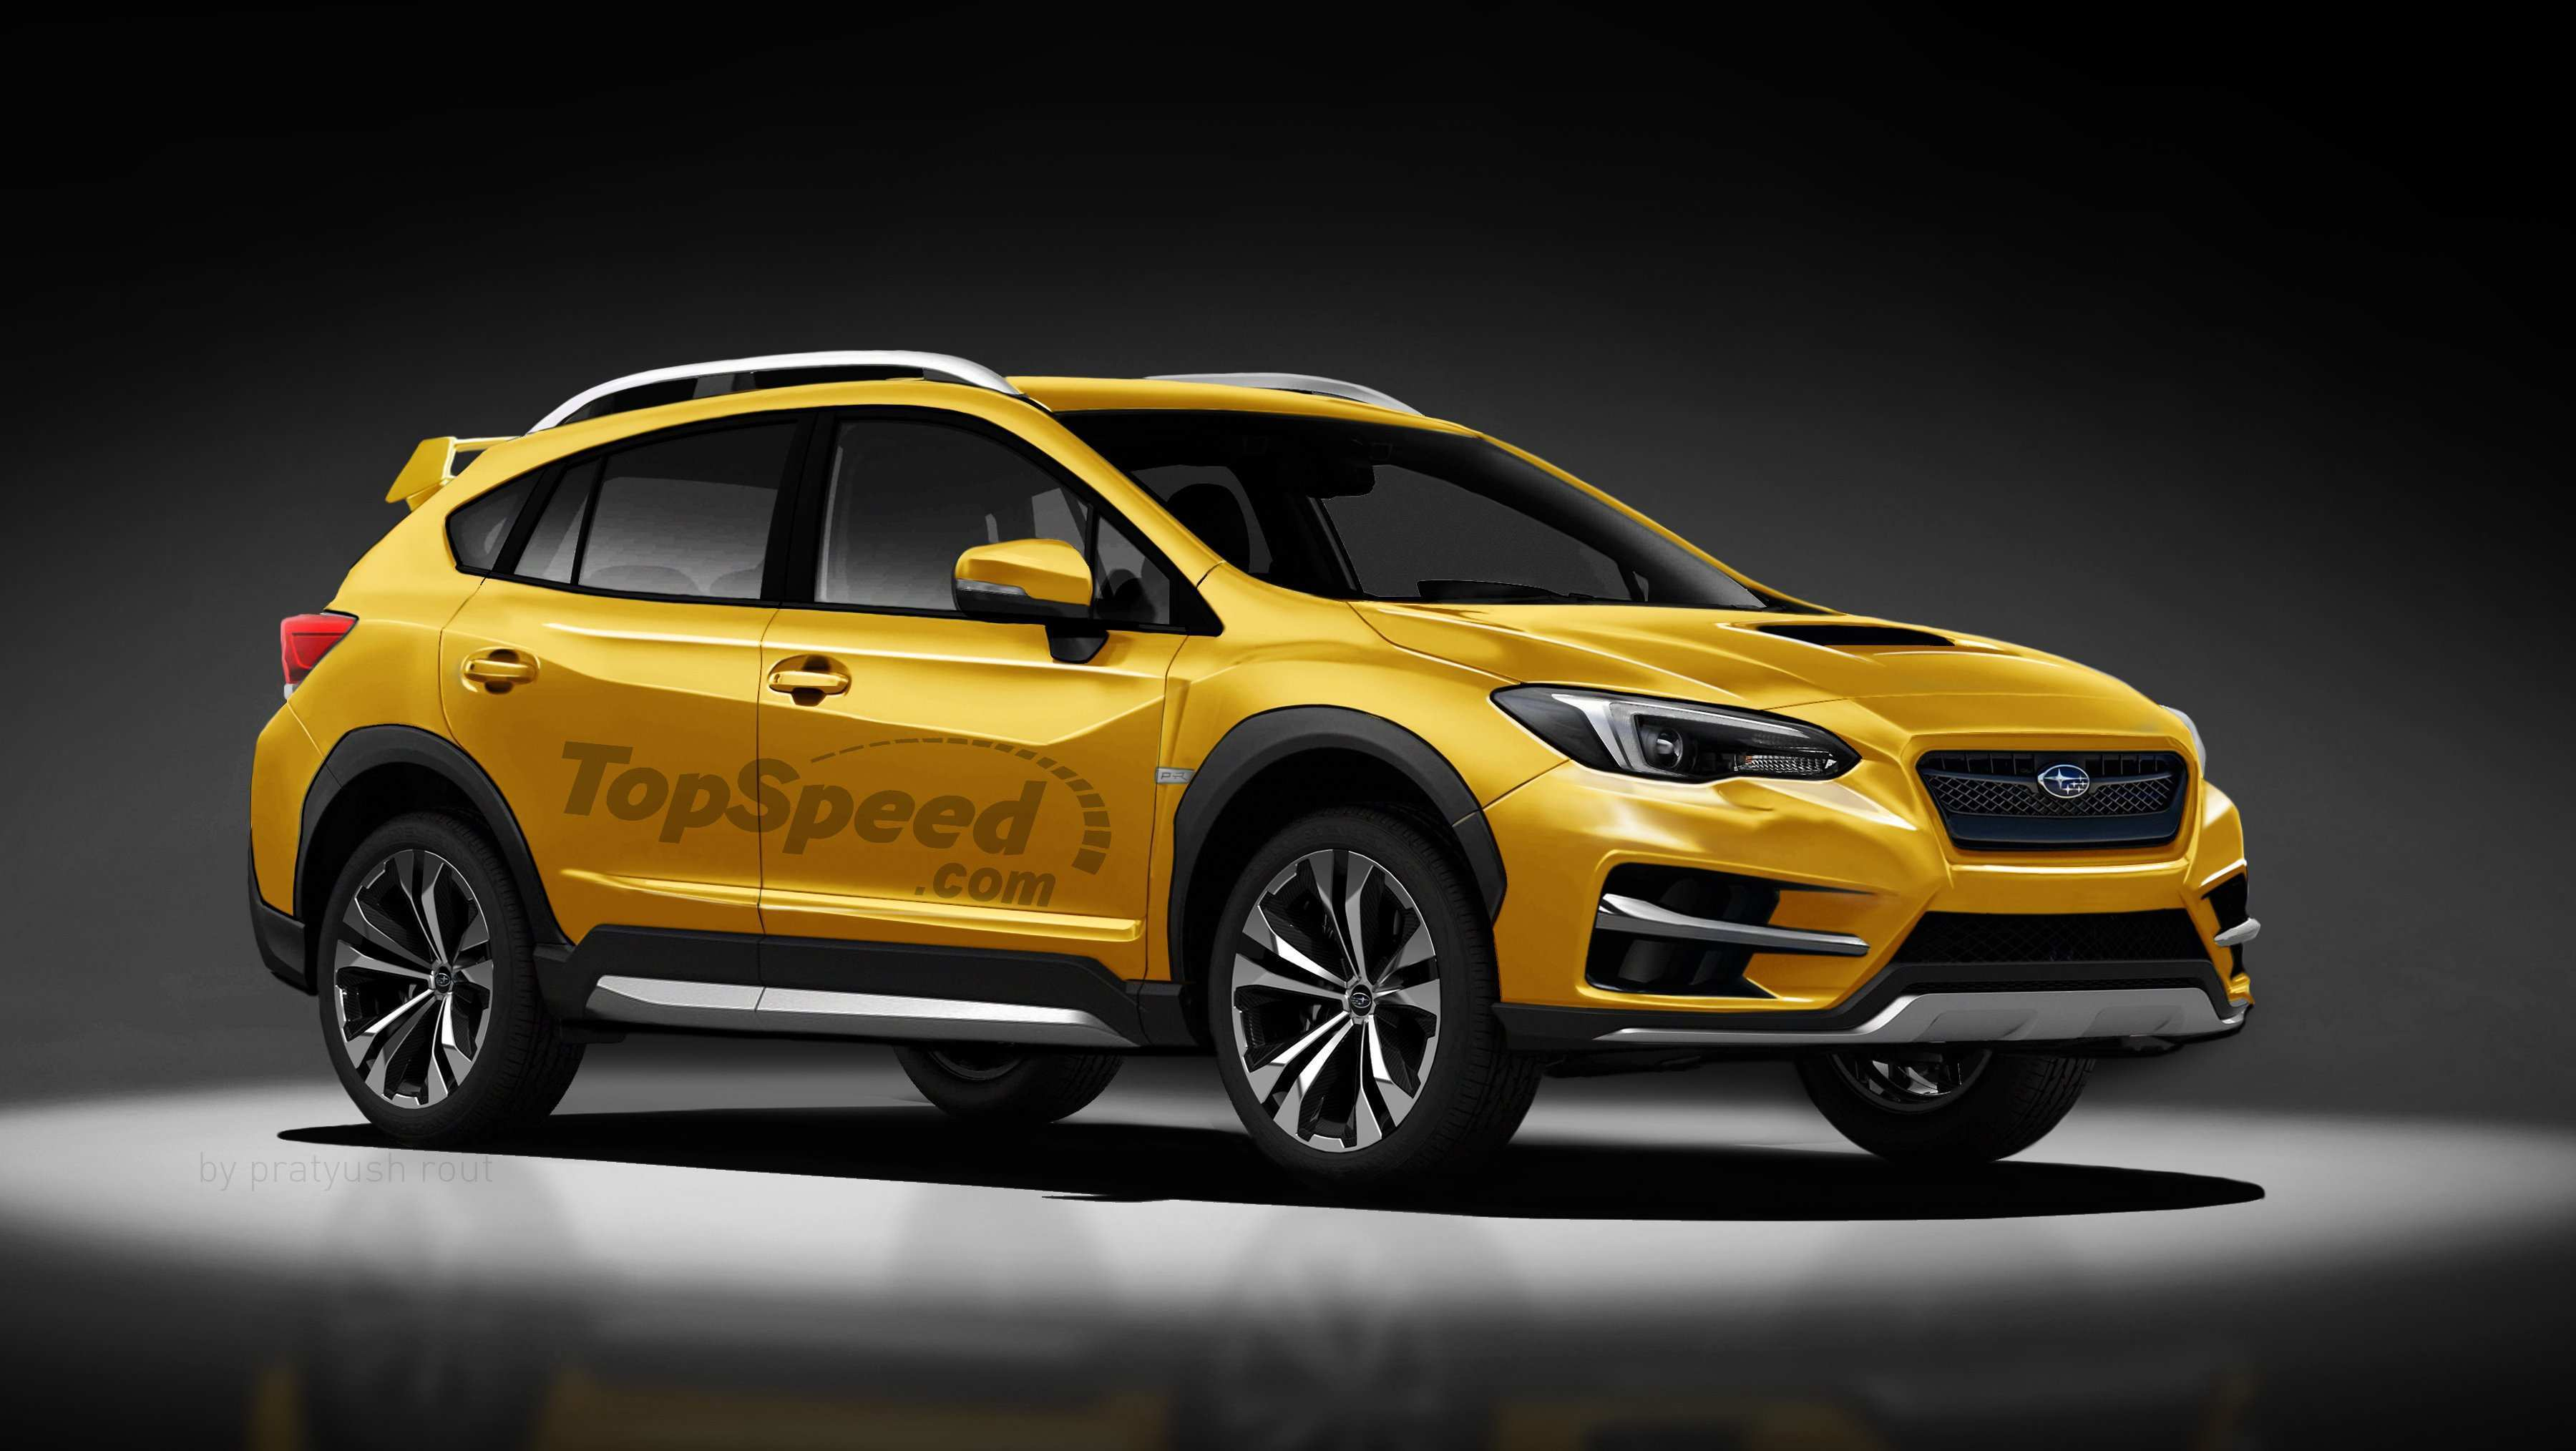 91 Great Subaru Plans For 2019 Concept Redesign And Review Ratings by Subaru Plans For 2019 Concept Redesign And Review